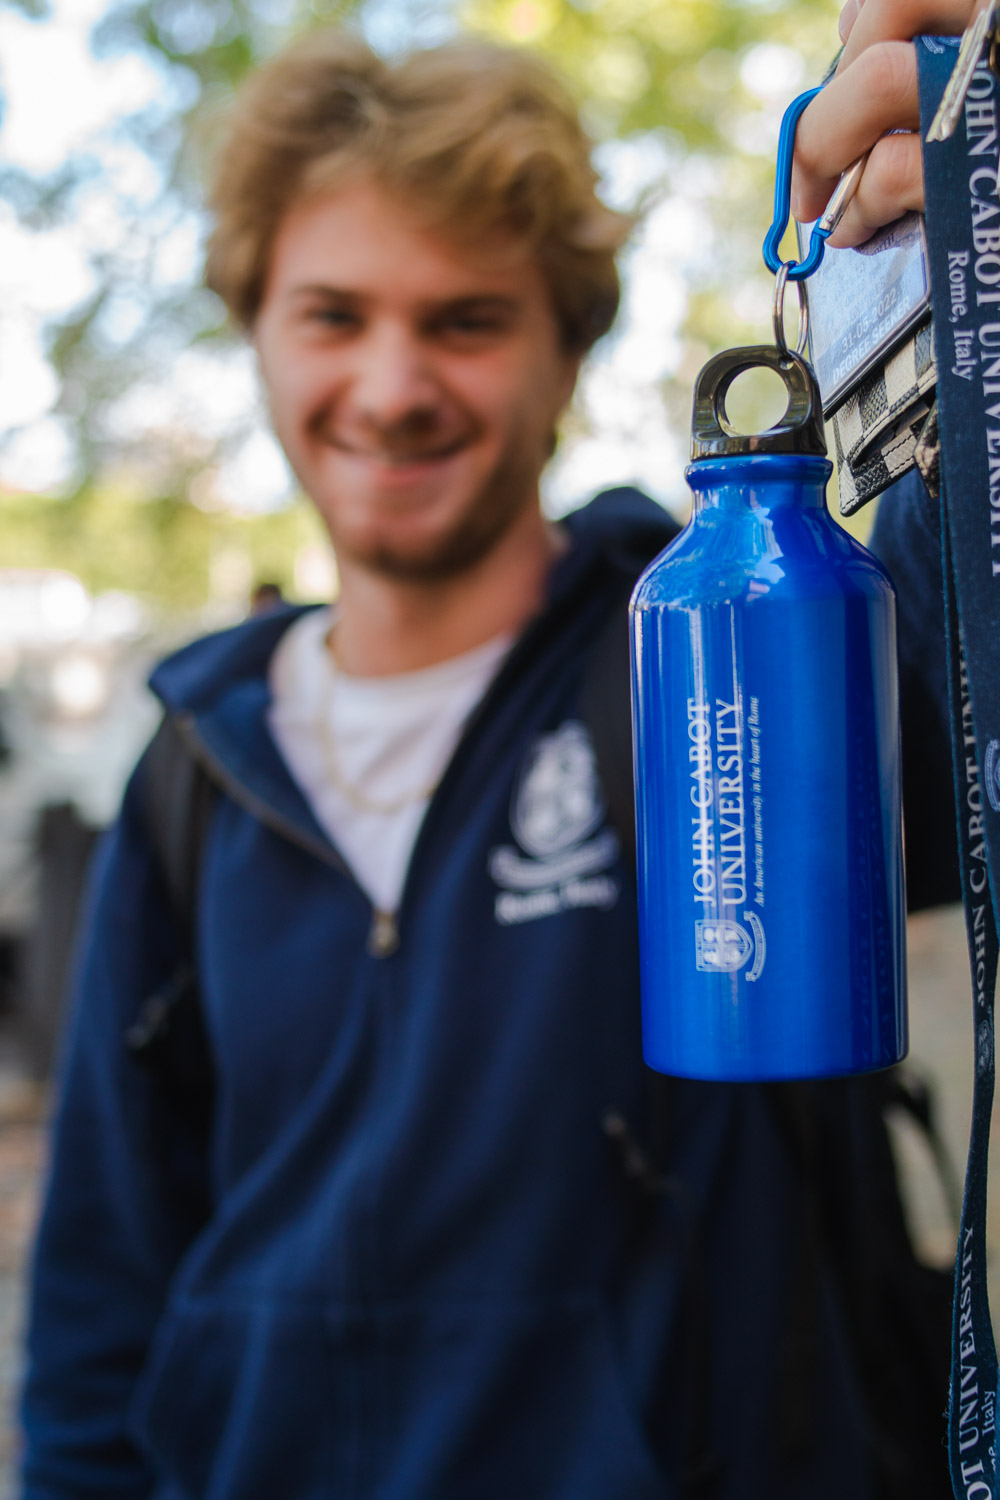 JCU's Water Bottle distributed by Grassroots